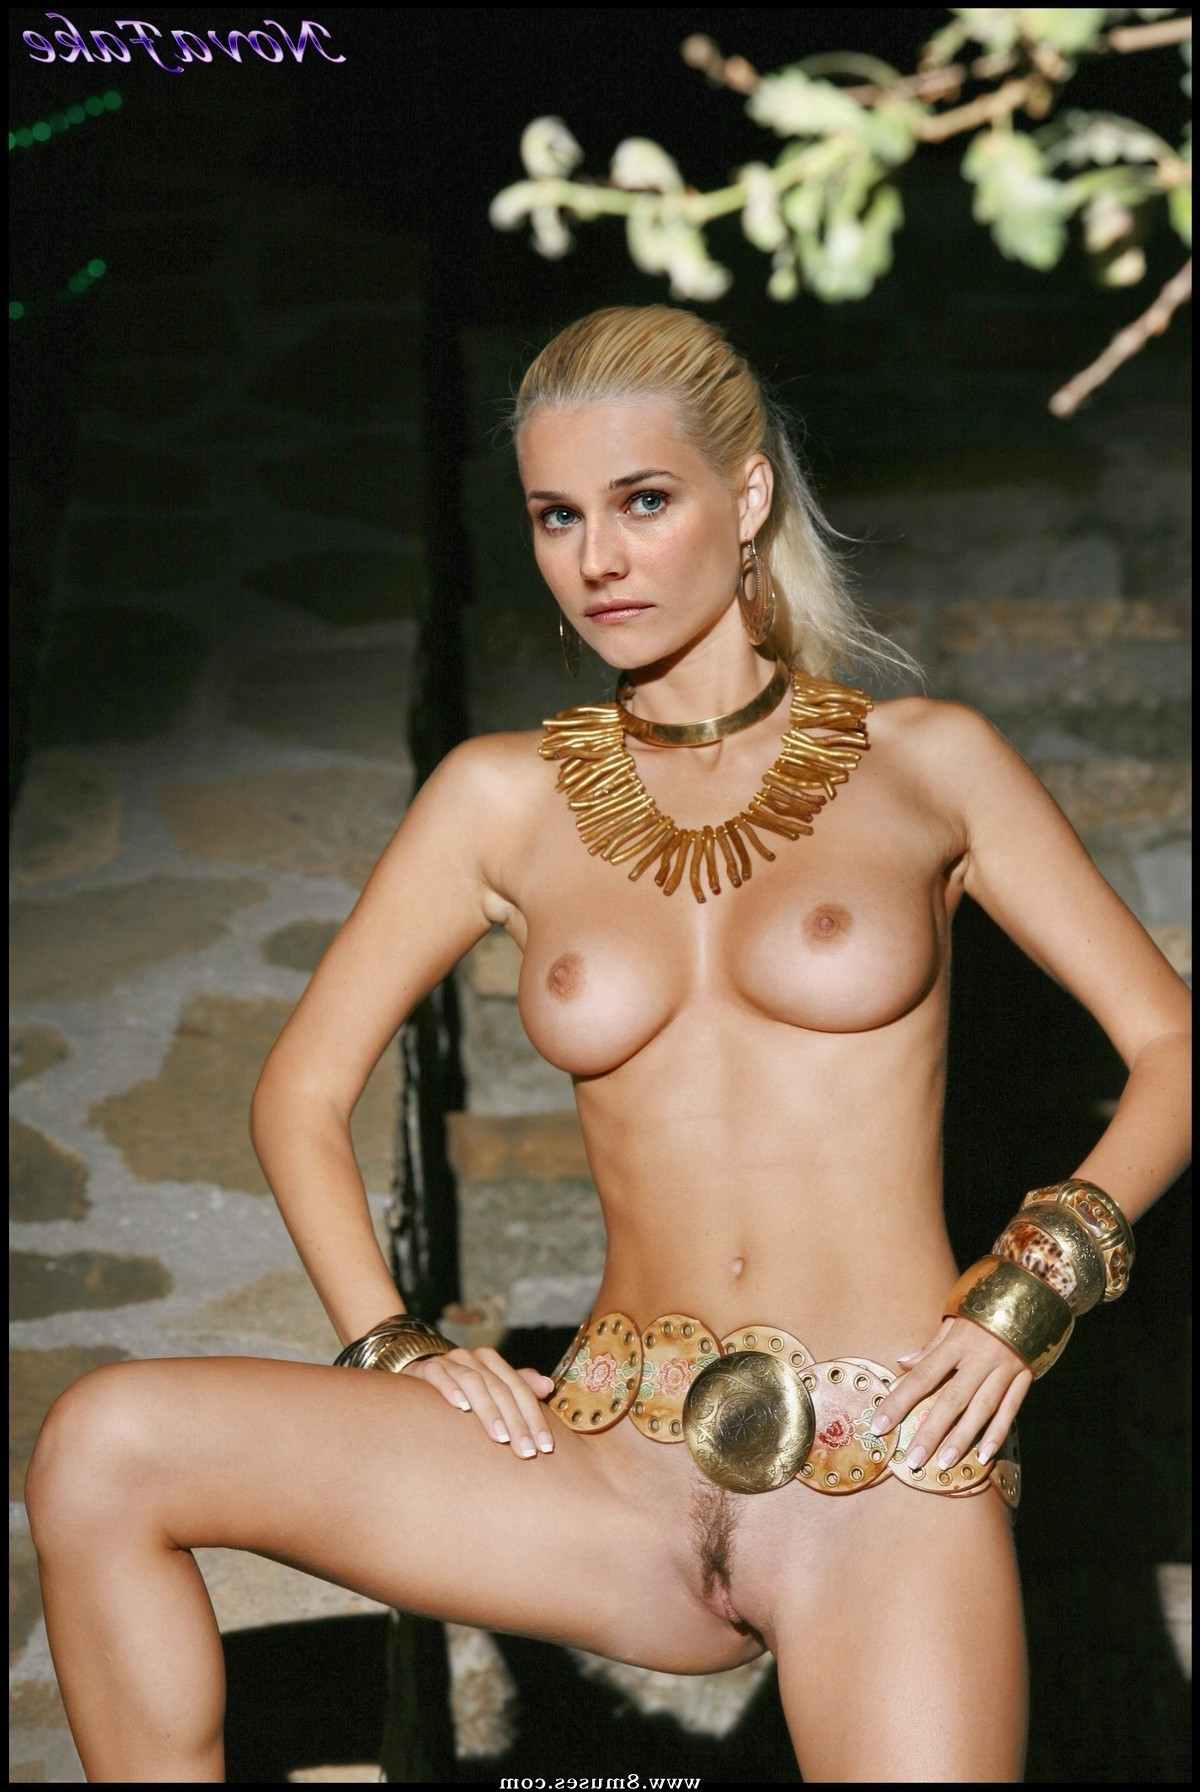 Fake-Celebrities-Sex-Pictures/Diane-Kruger Diane_Kruger__8muses_-_Sex_and_Porn_Comics_2.jpg